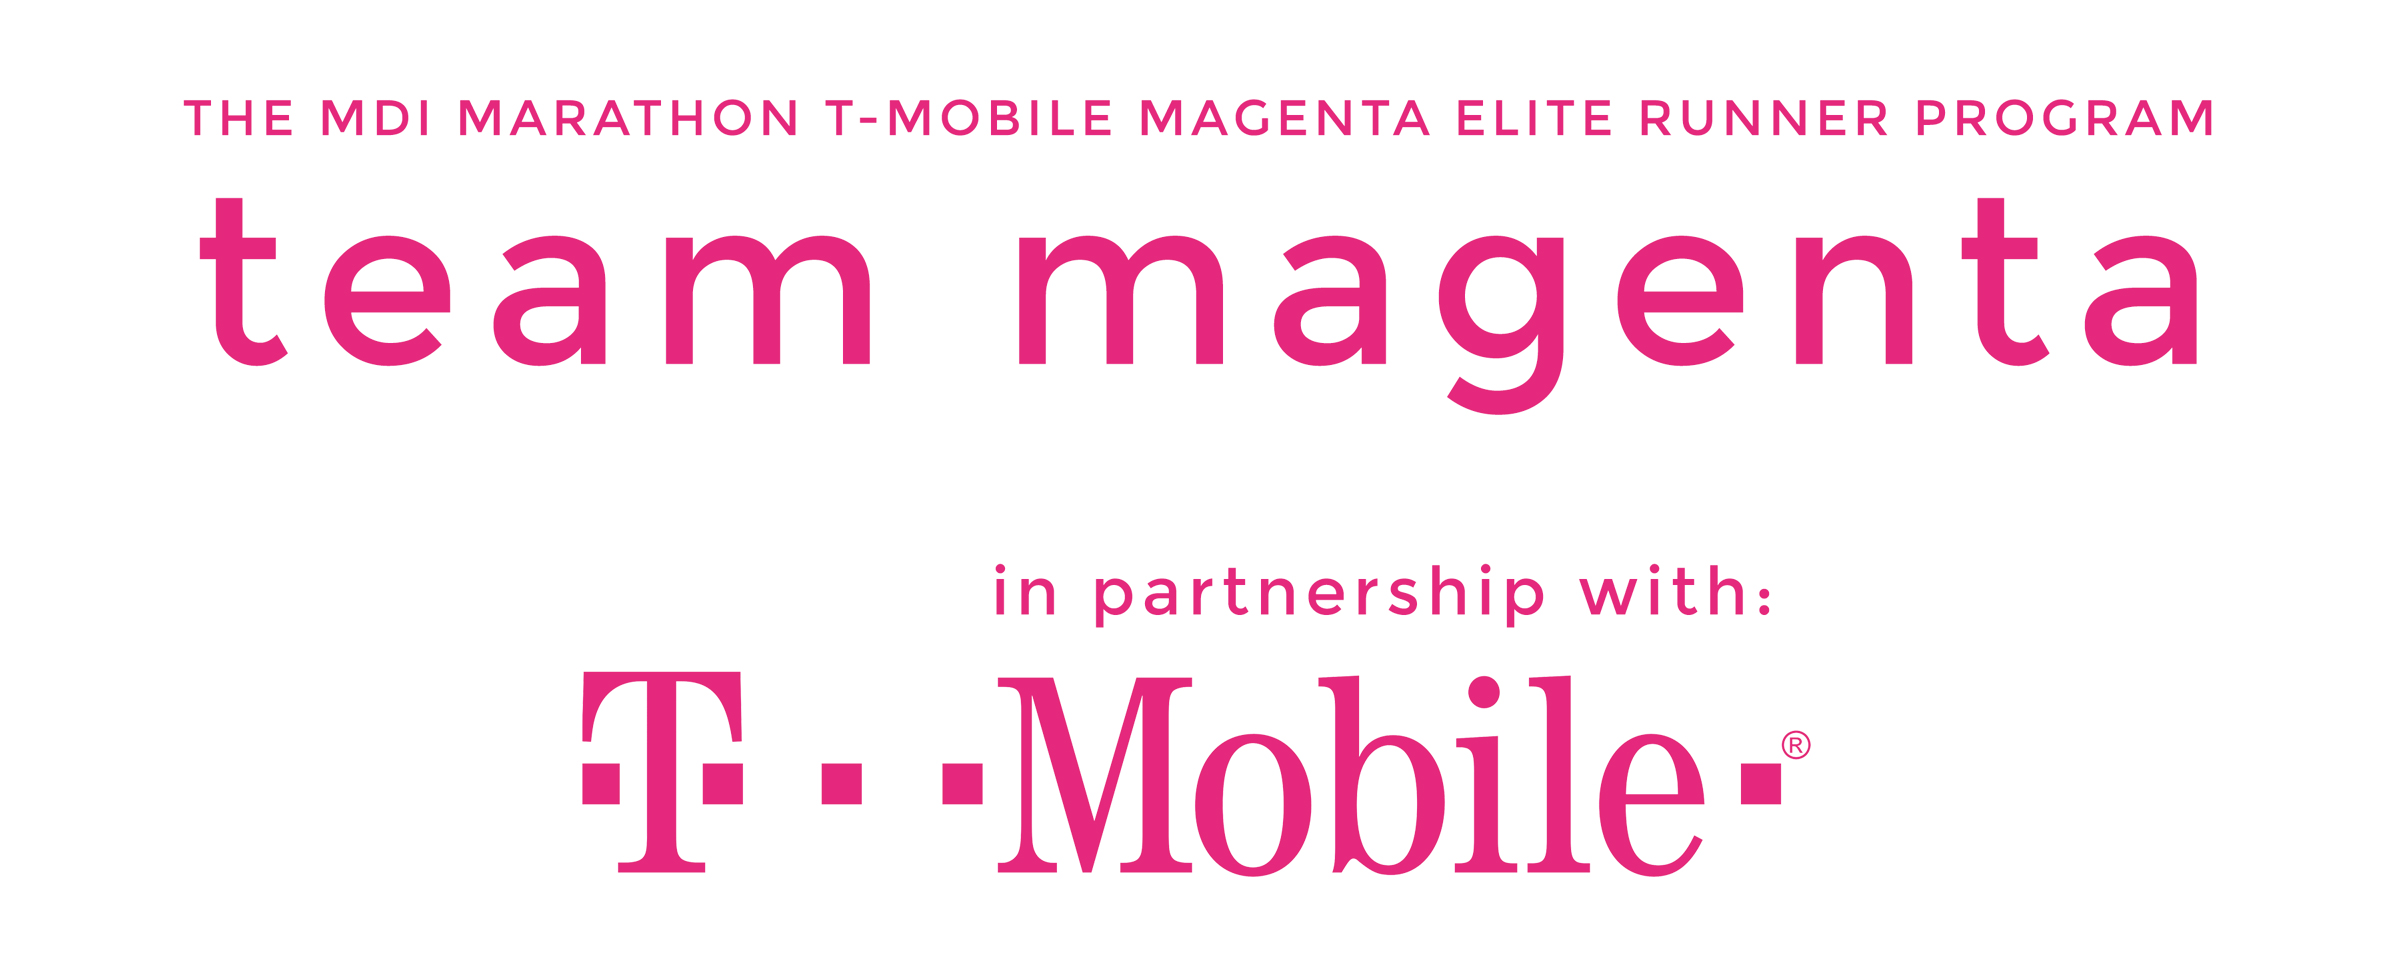 tmobile-team-magenta-web-full.jpg